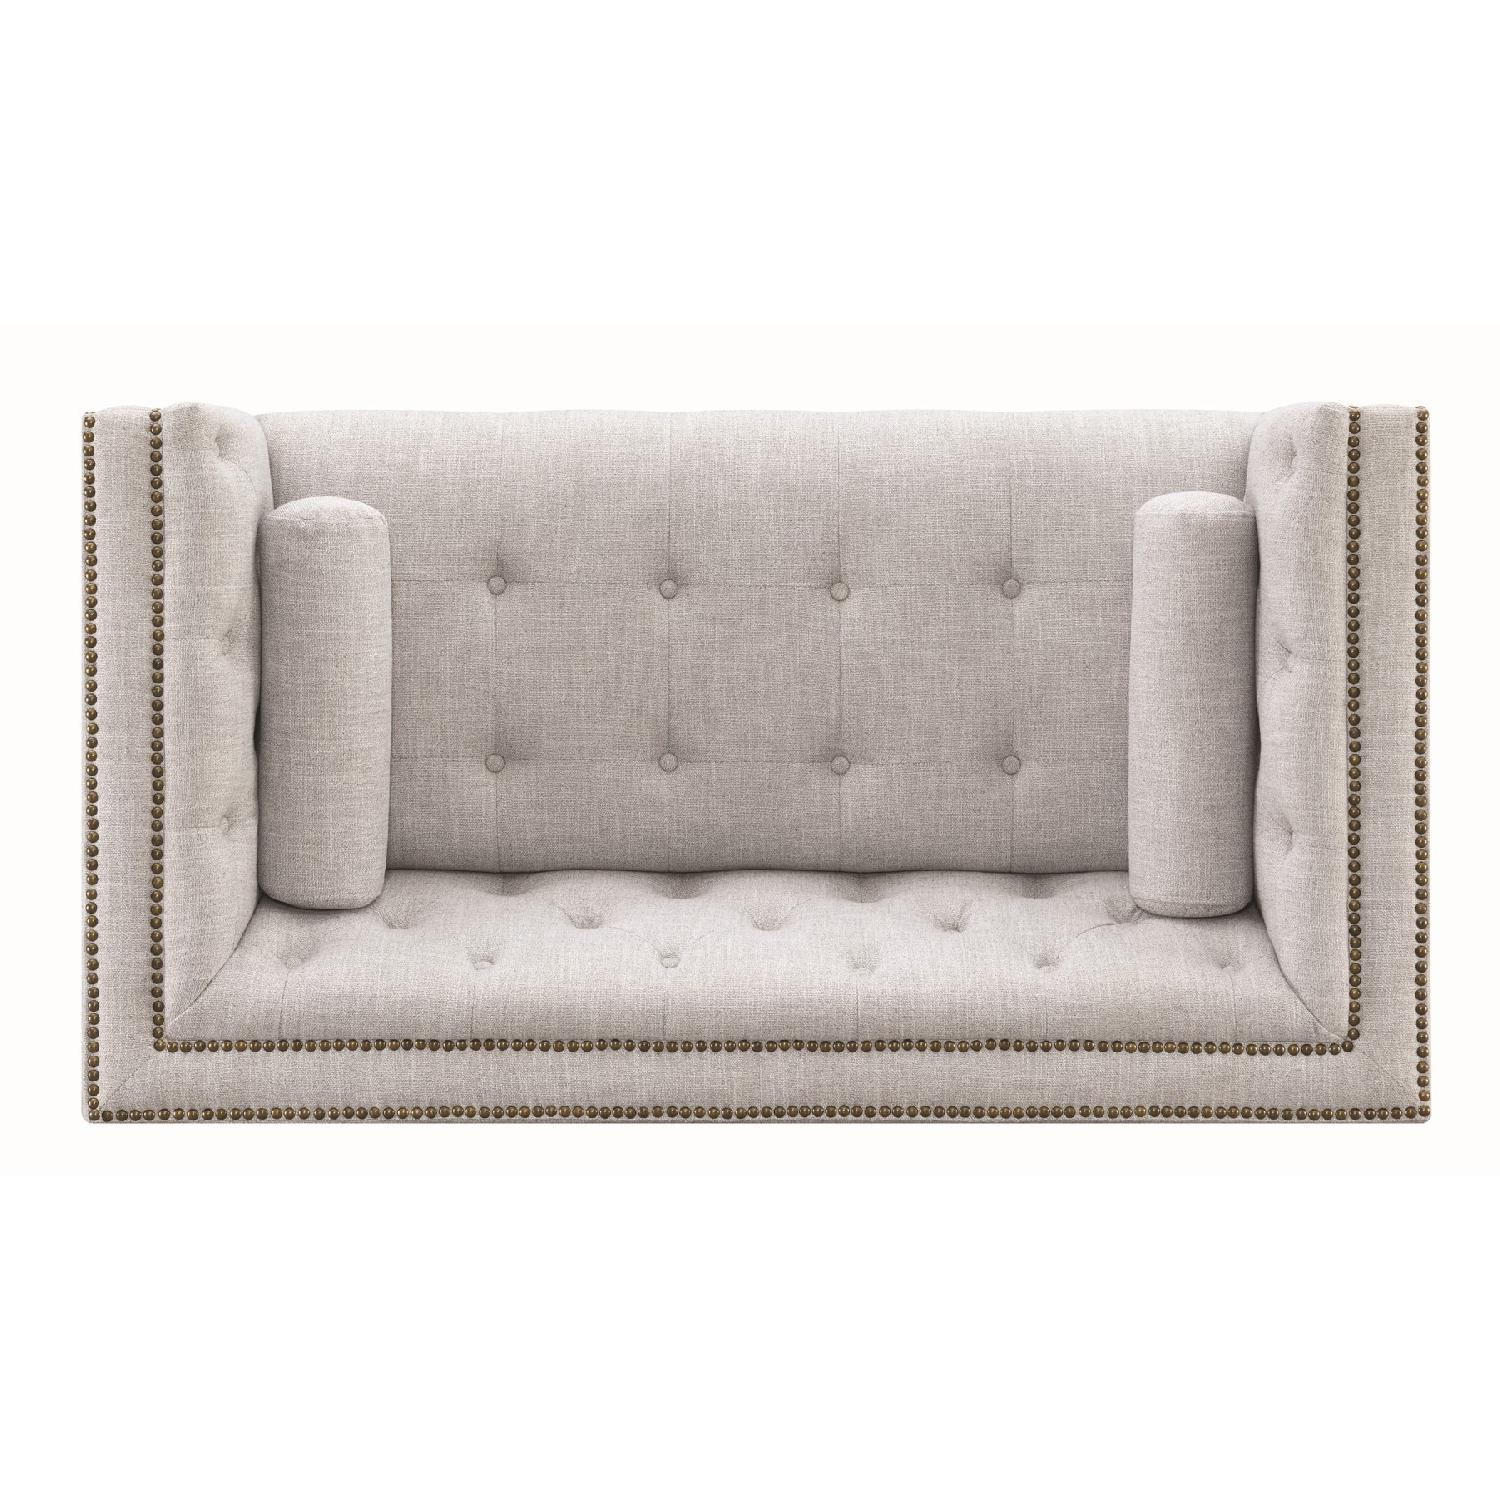 Modern Style Loveseat w/ Tufted Buttons & Nailhead Accent - image-5